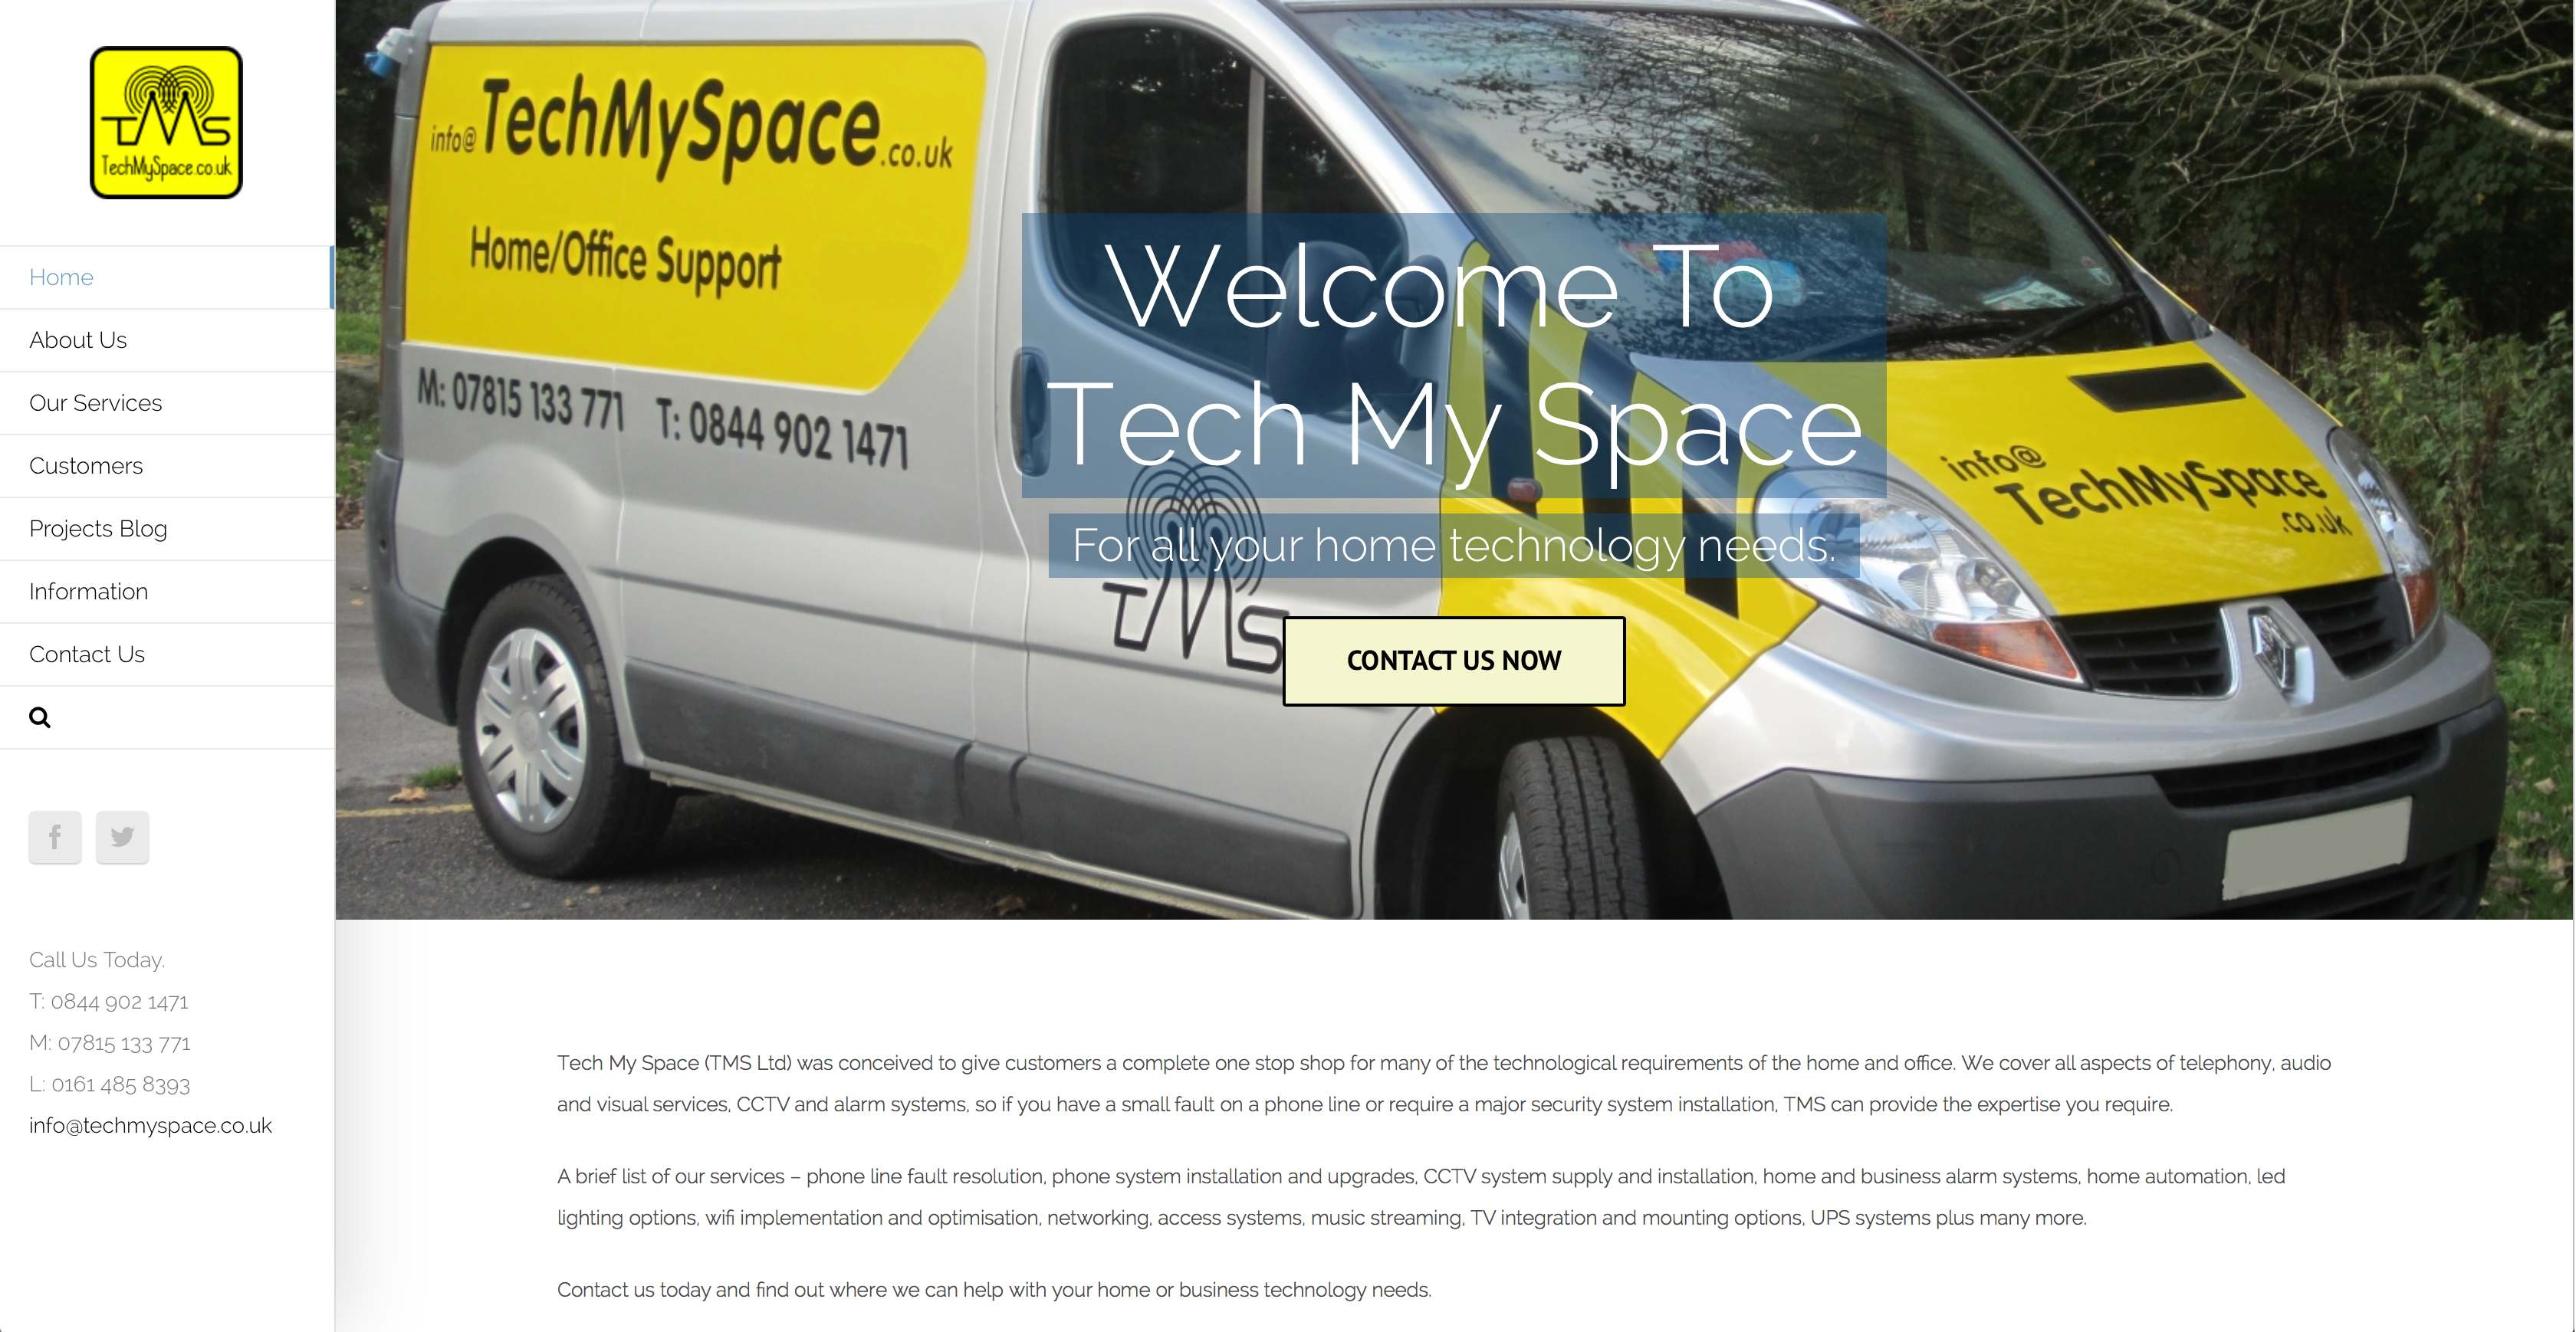 New website design for Tech My Space